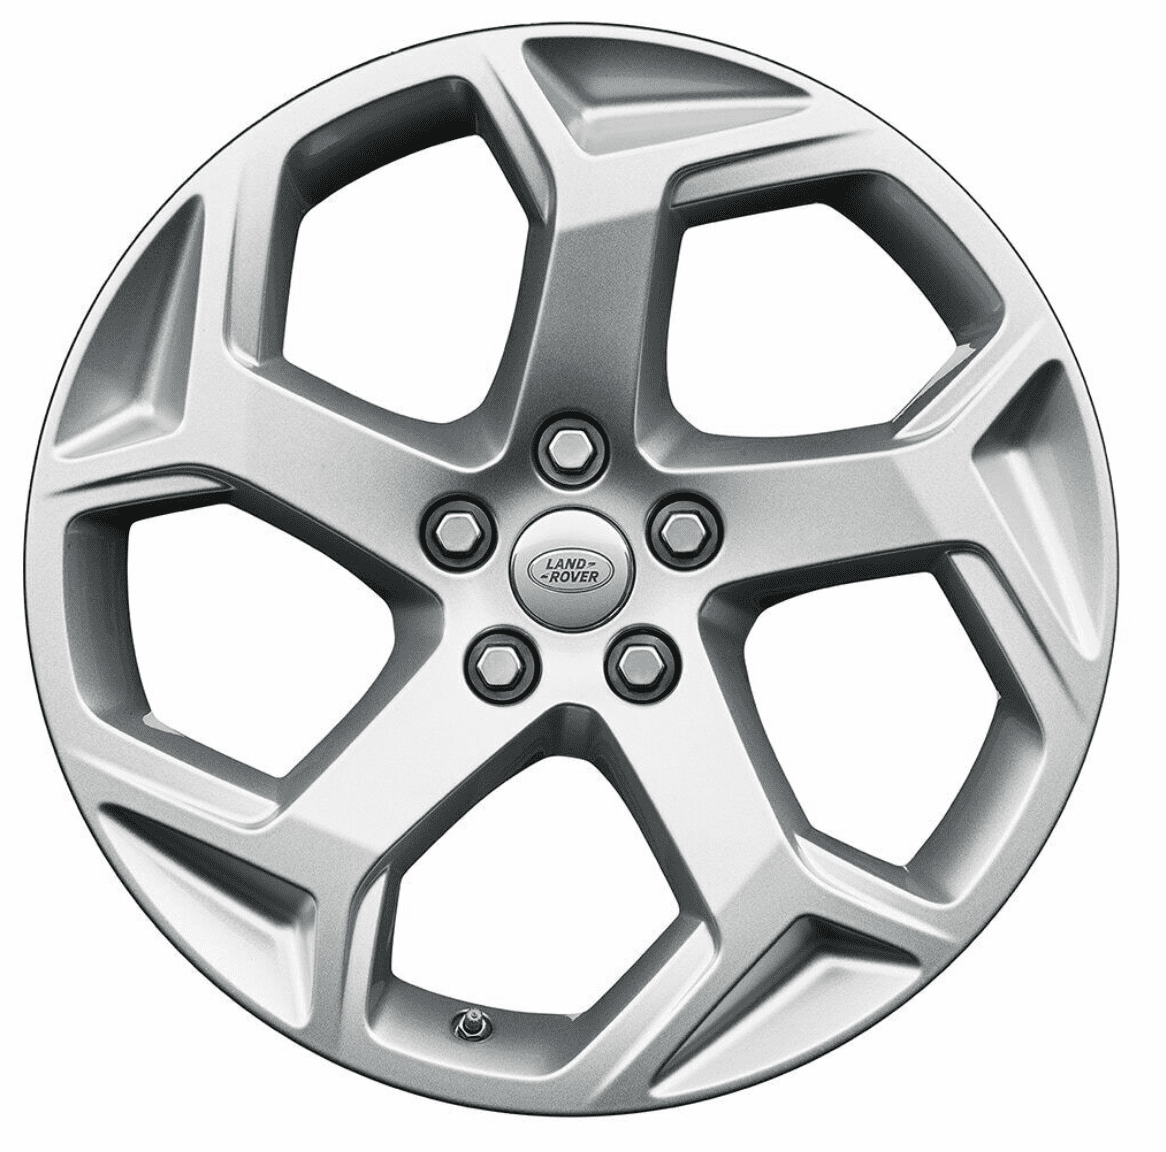 """Genuine Land Rover Range Rover Style 5084 20"""" inch 5 Split-Spoke Alloy Wheels with Sparkle Silver Finish LR099135"""